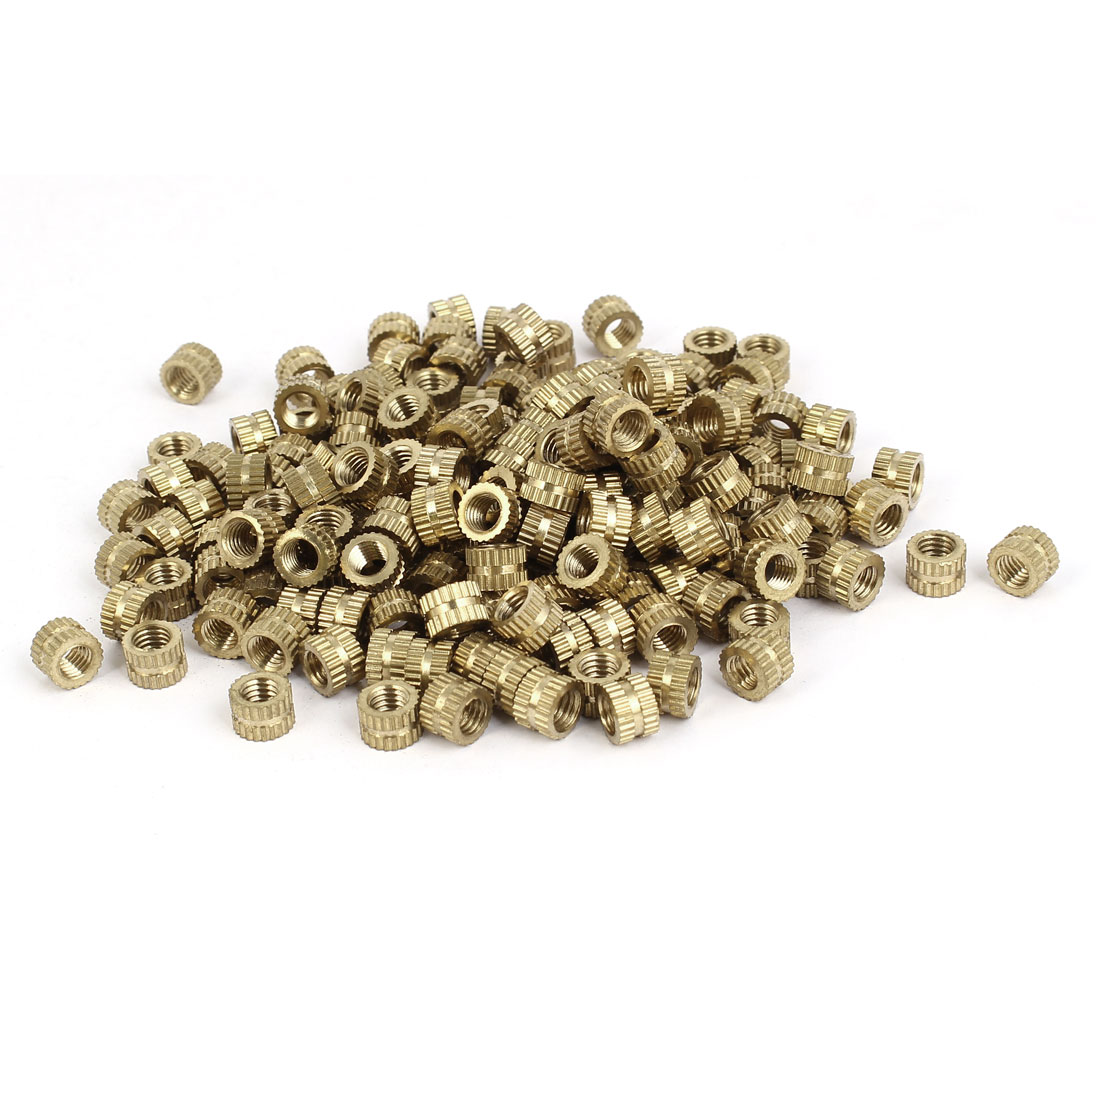 M5 x 5mm x 7.3mm Brass Cylinder Knurled Threaded Insert Embedded Nuts 200PCS